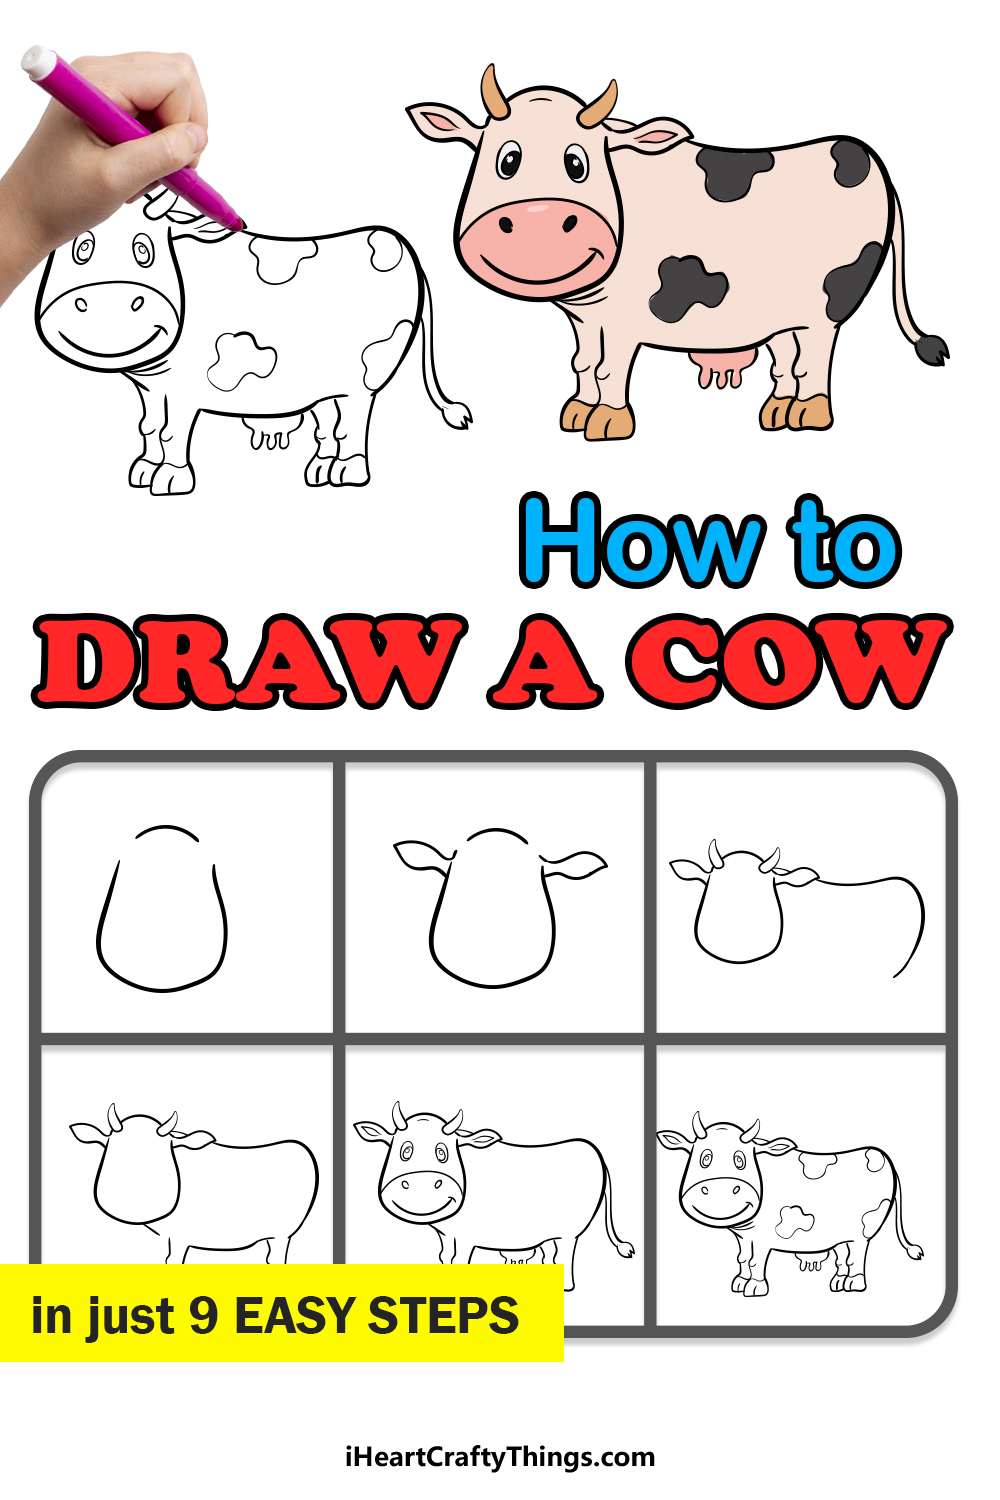 how to draw a cow in 9 easy steps